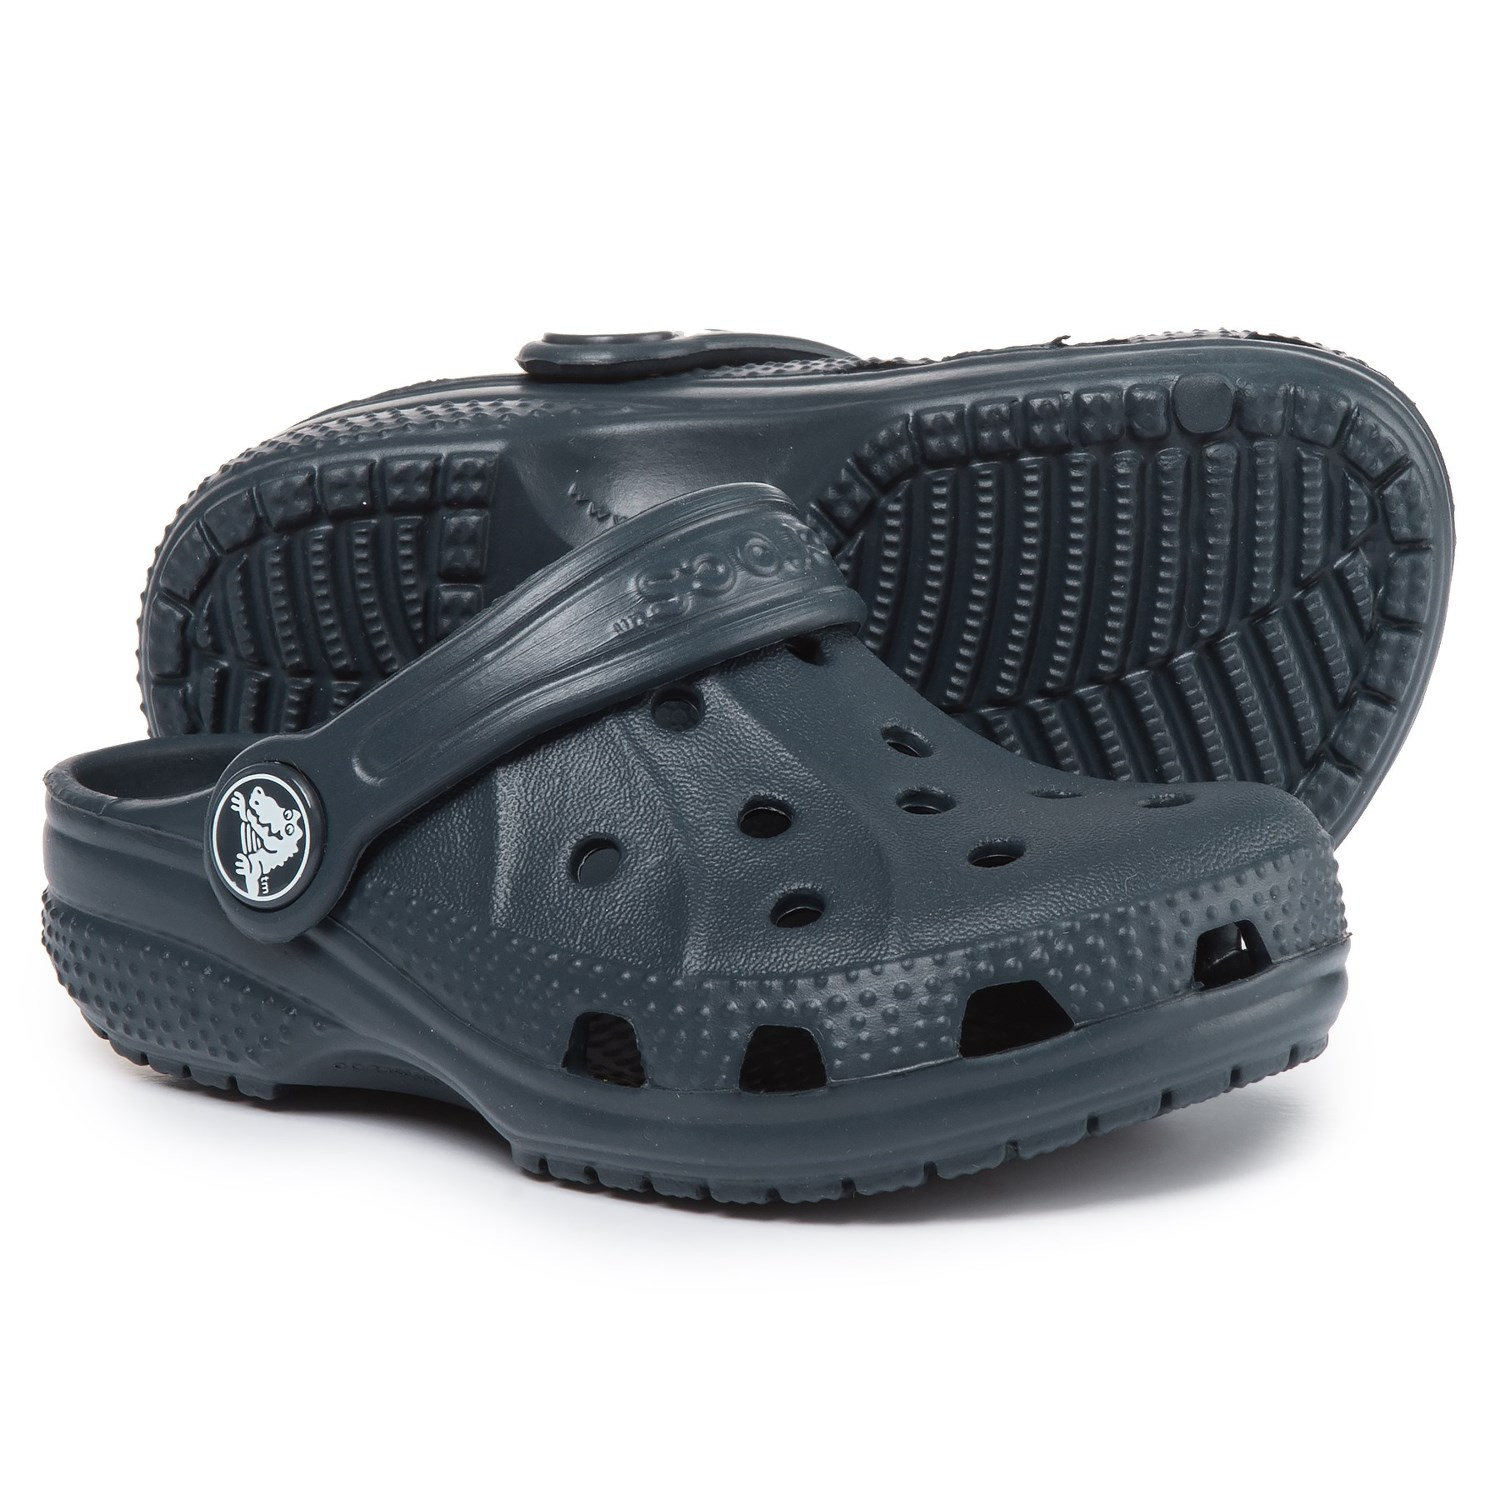 7c8bf591f8 Crocs Ralen Clogs (For Boys)